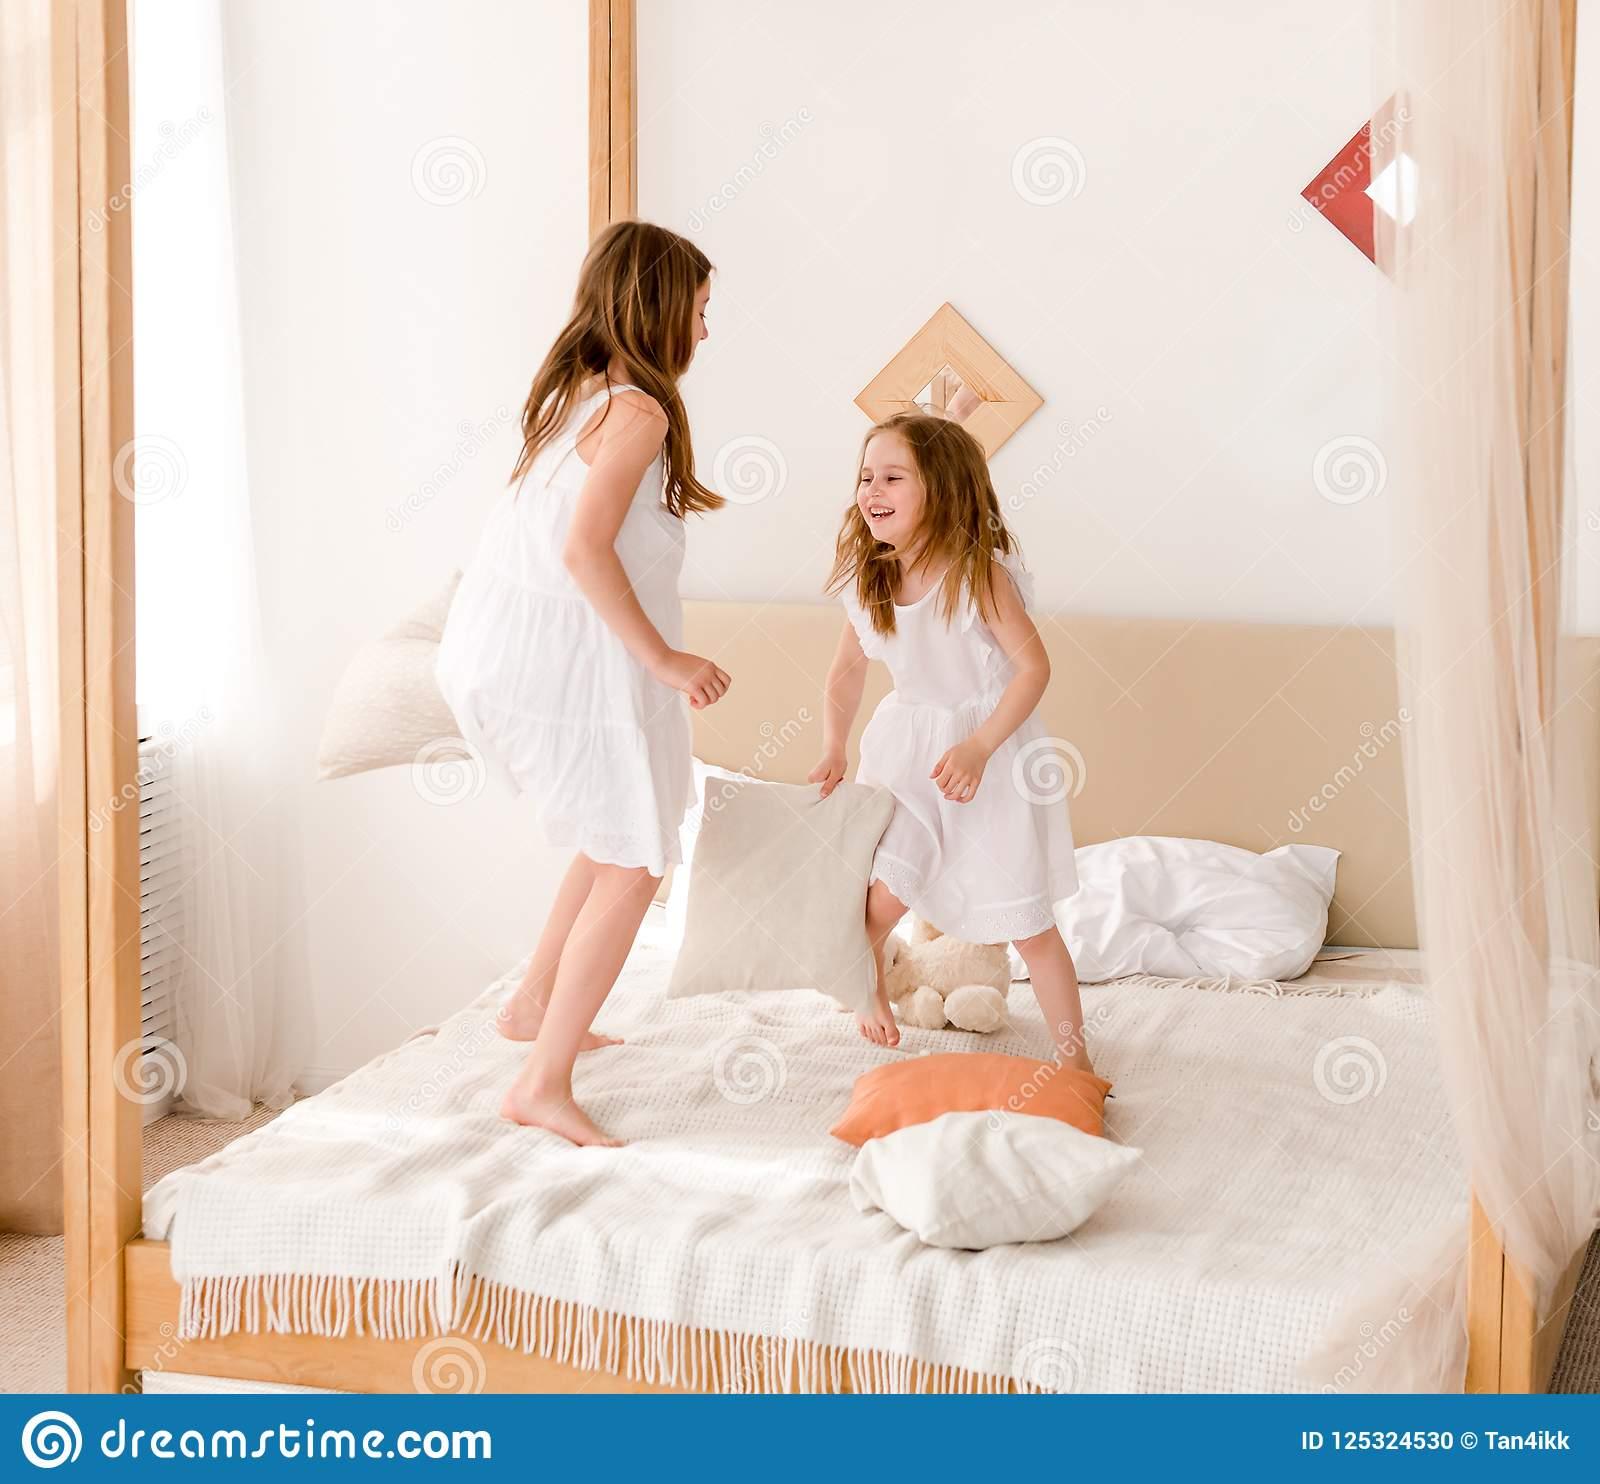 Two little girls fighting with pillows on the bed